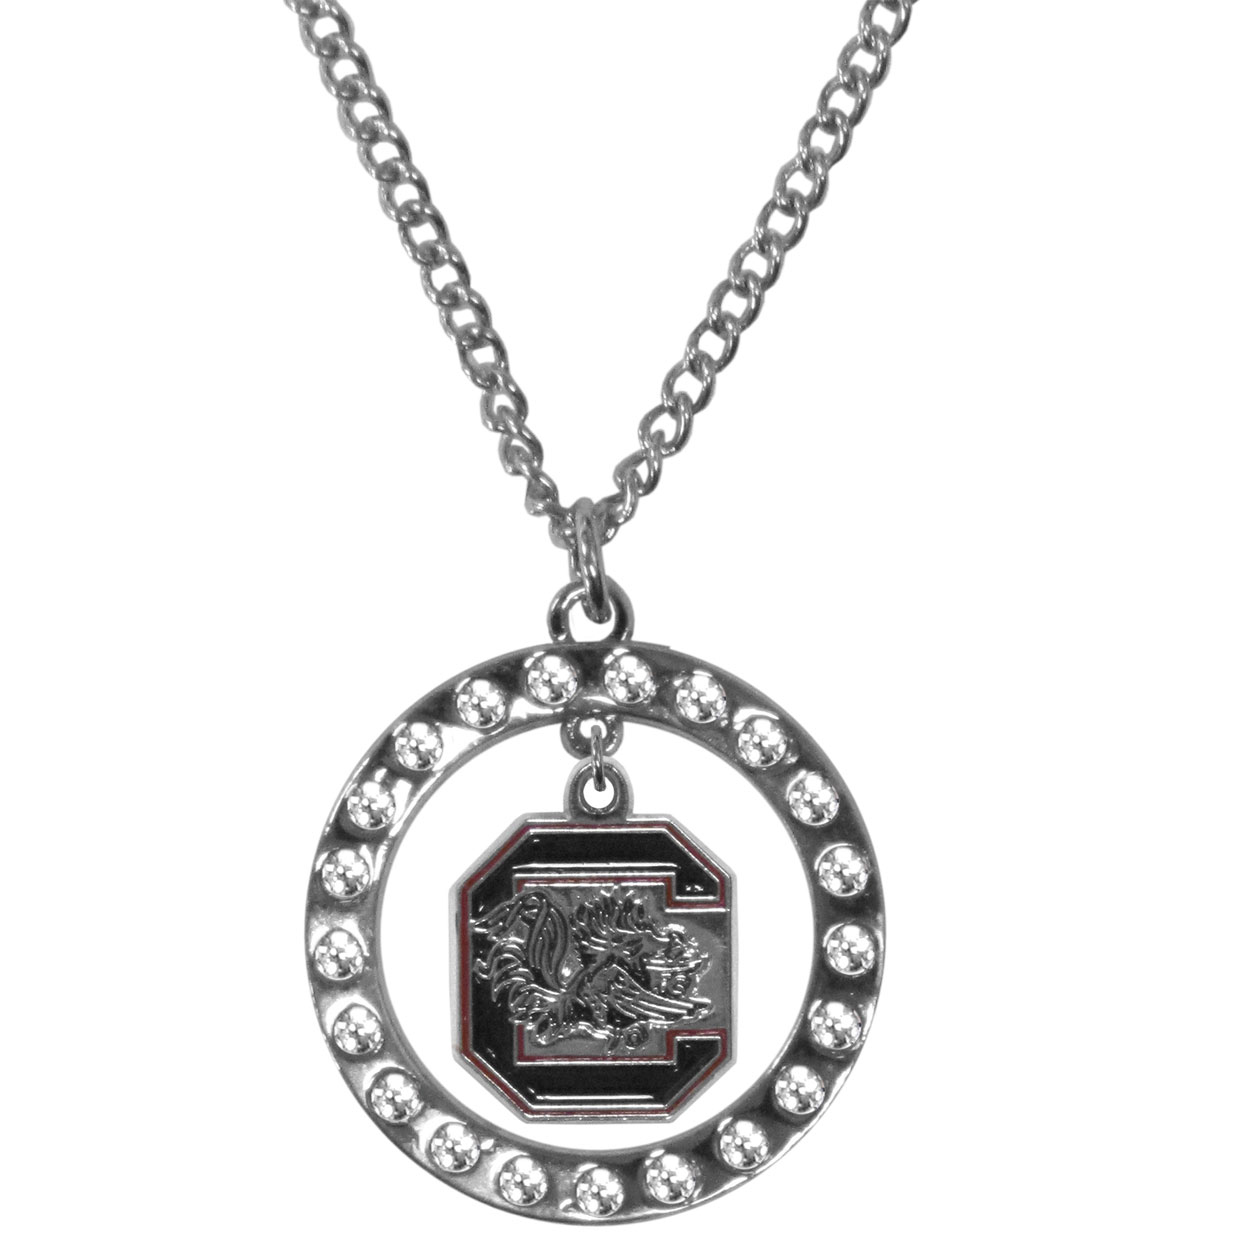 S. Carolina Gamecocks Rhinestone Hoop Necklaces - Our S. Carolina Gamecocks rhinestone hoop necklace comes on an 18 inch chain and features a hoop covered in rhinestones with a high polish chrome finish and a cast and enameled team charm dangling in the center.